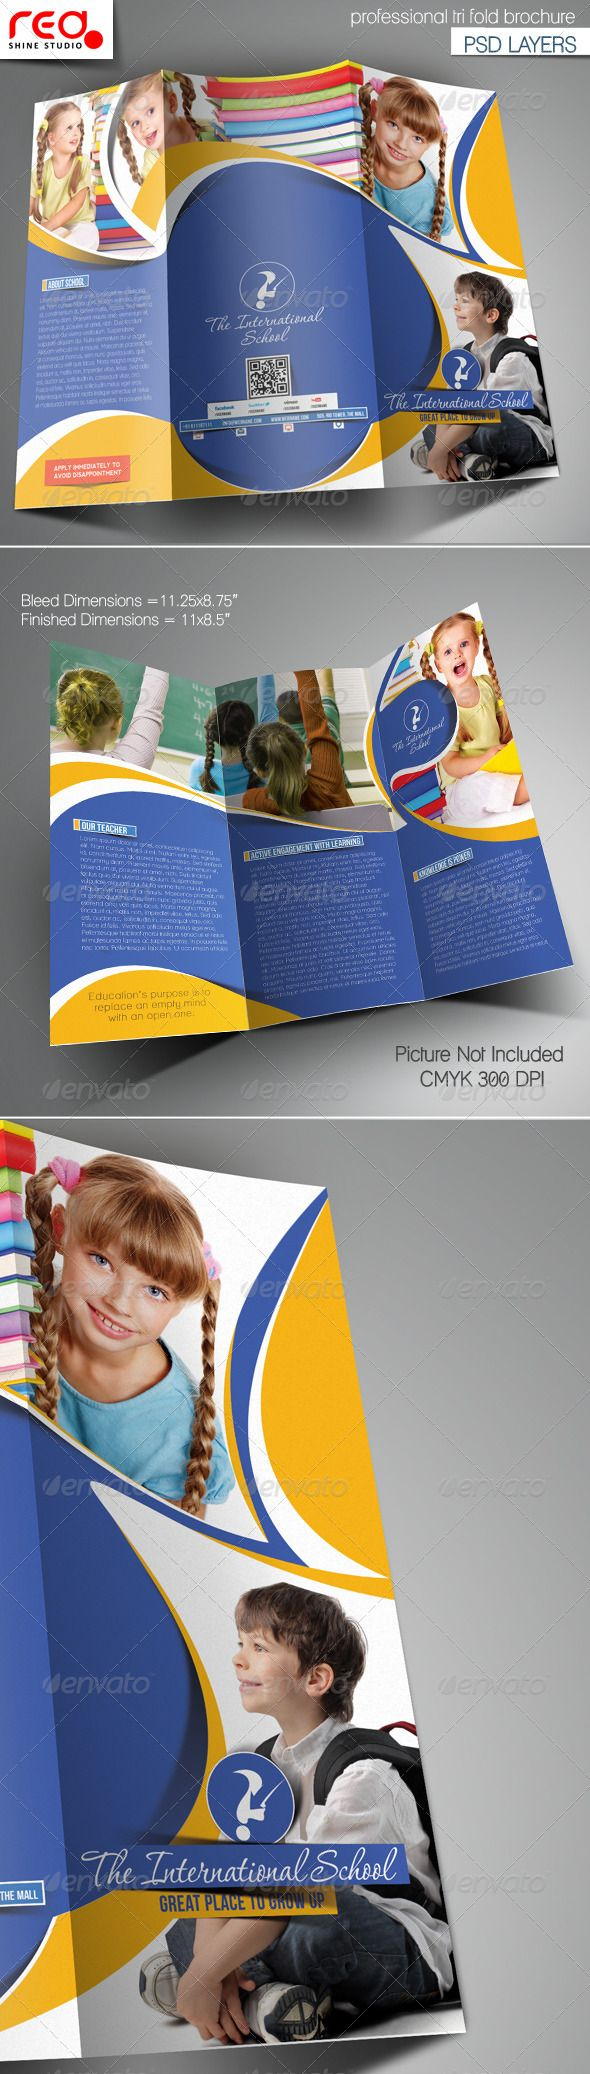 Junior school promotion trifold brochure template brochure junior school promotion trifold brochure template psd template saigontimesfo